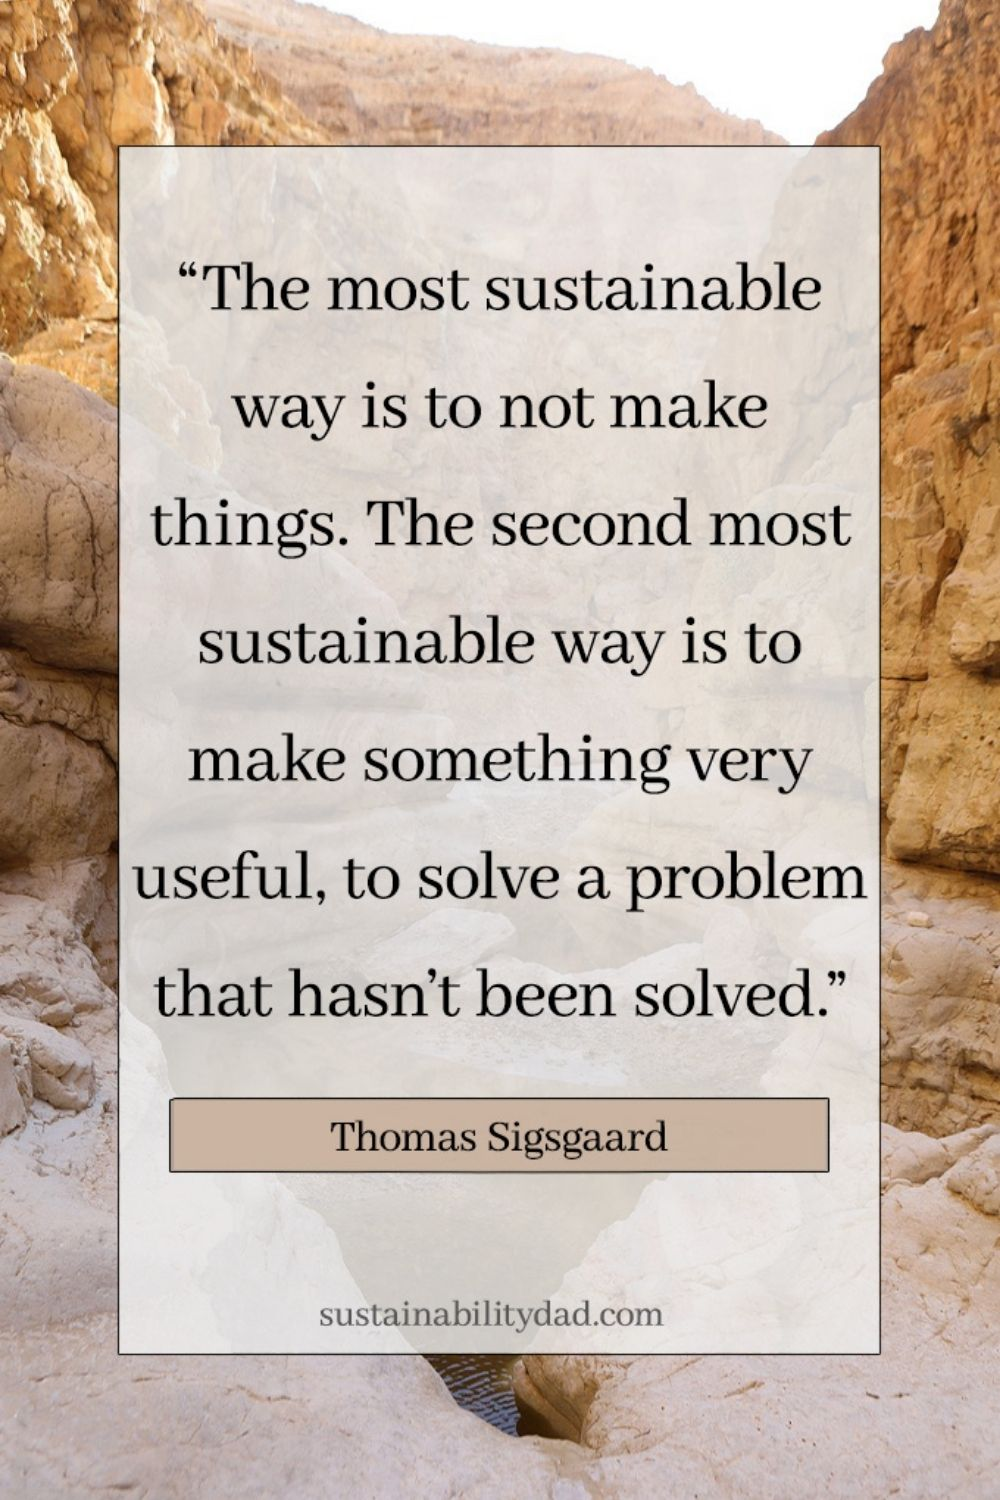 sustainability quotes not to make